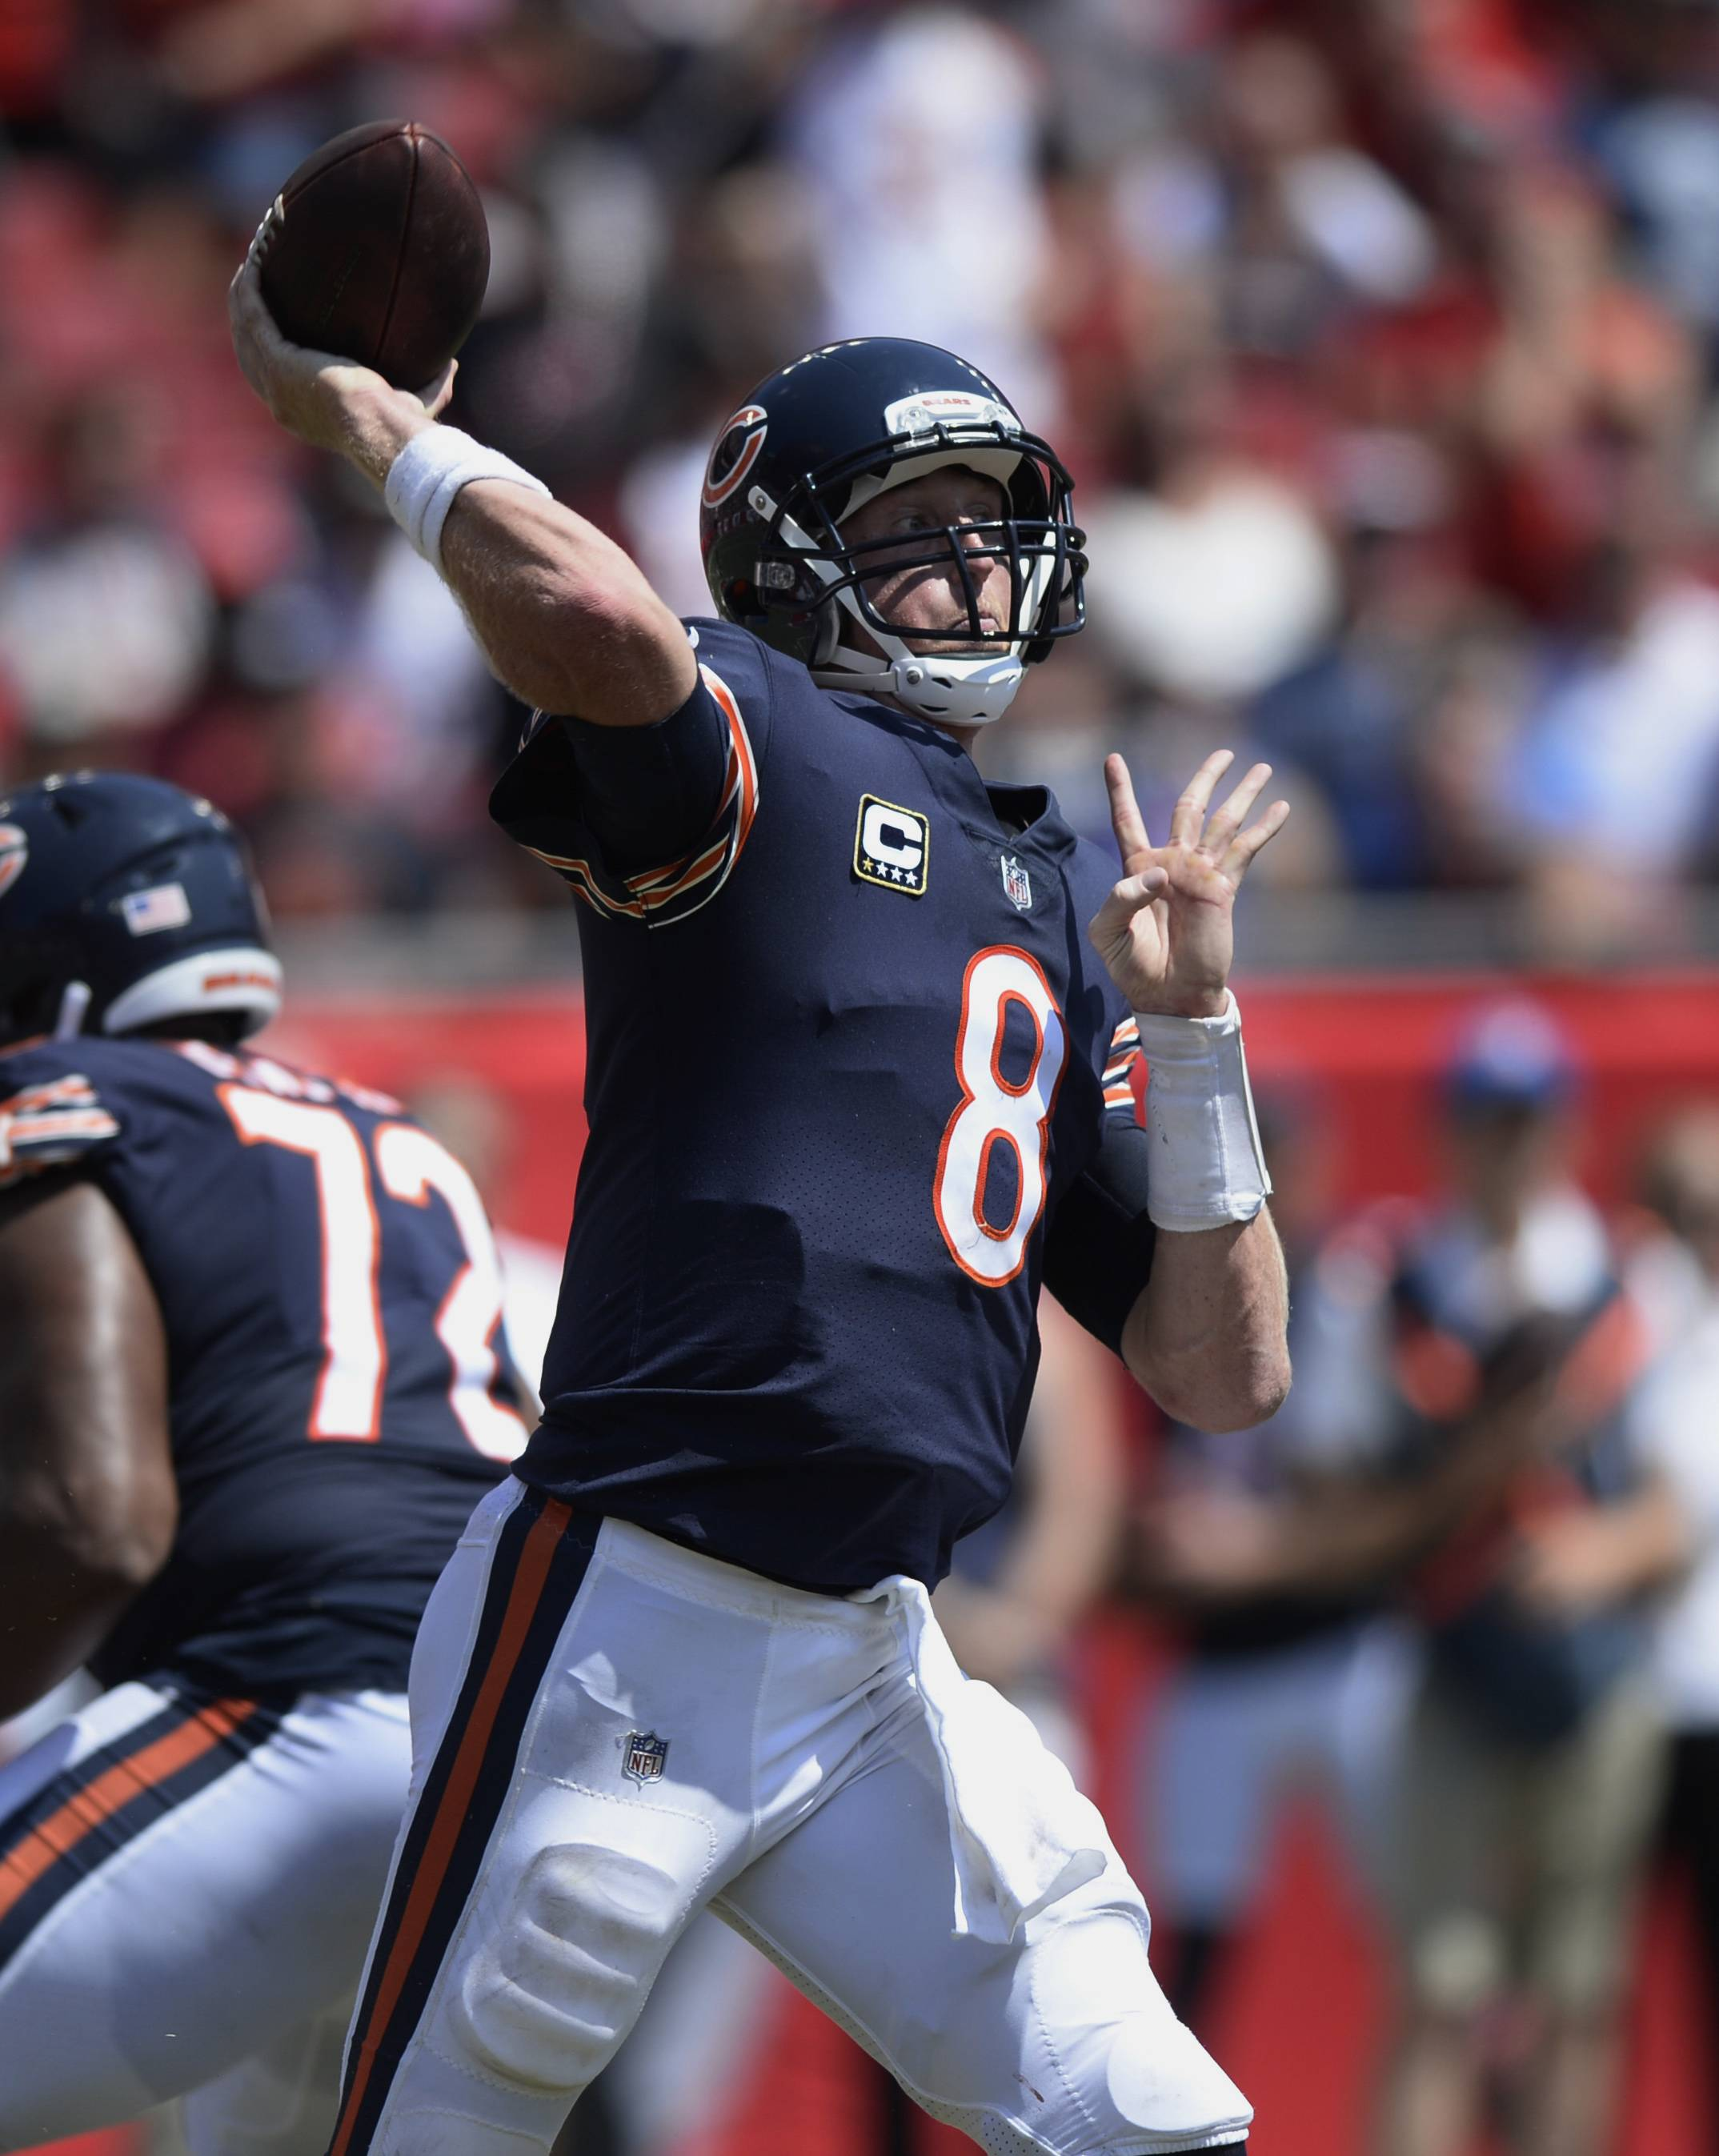 Chicago Bears coach John Fox says he's sticking with quarterback Mike Glennon because he feels Glennon gives the team a better chance to win than rookie Mitch Trubisky.